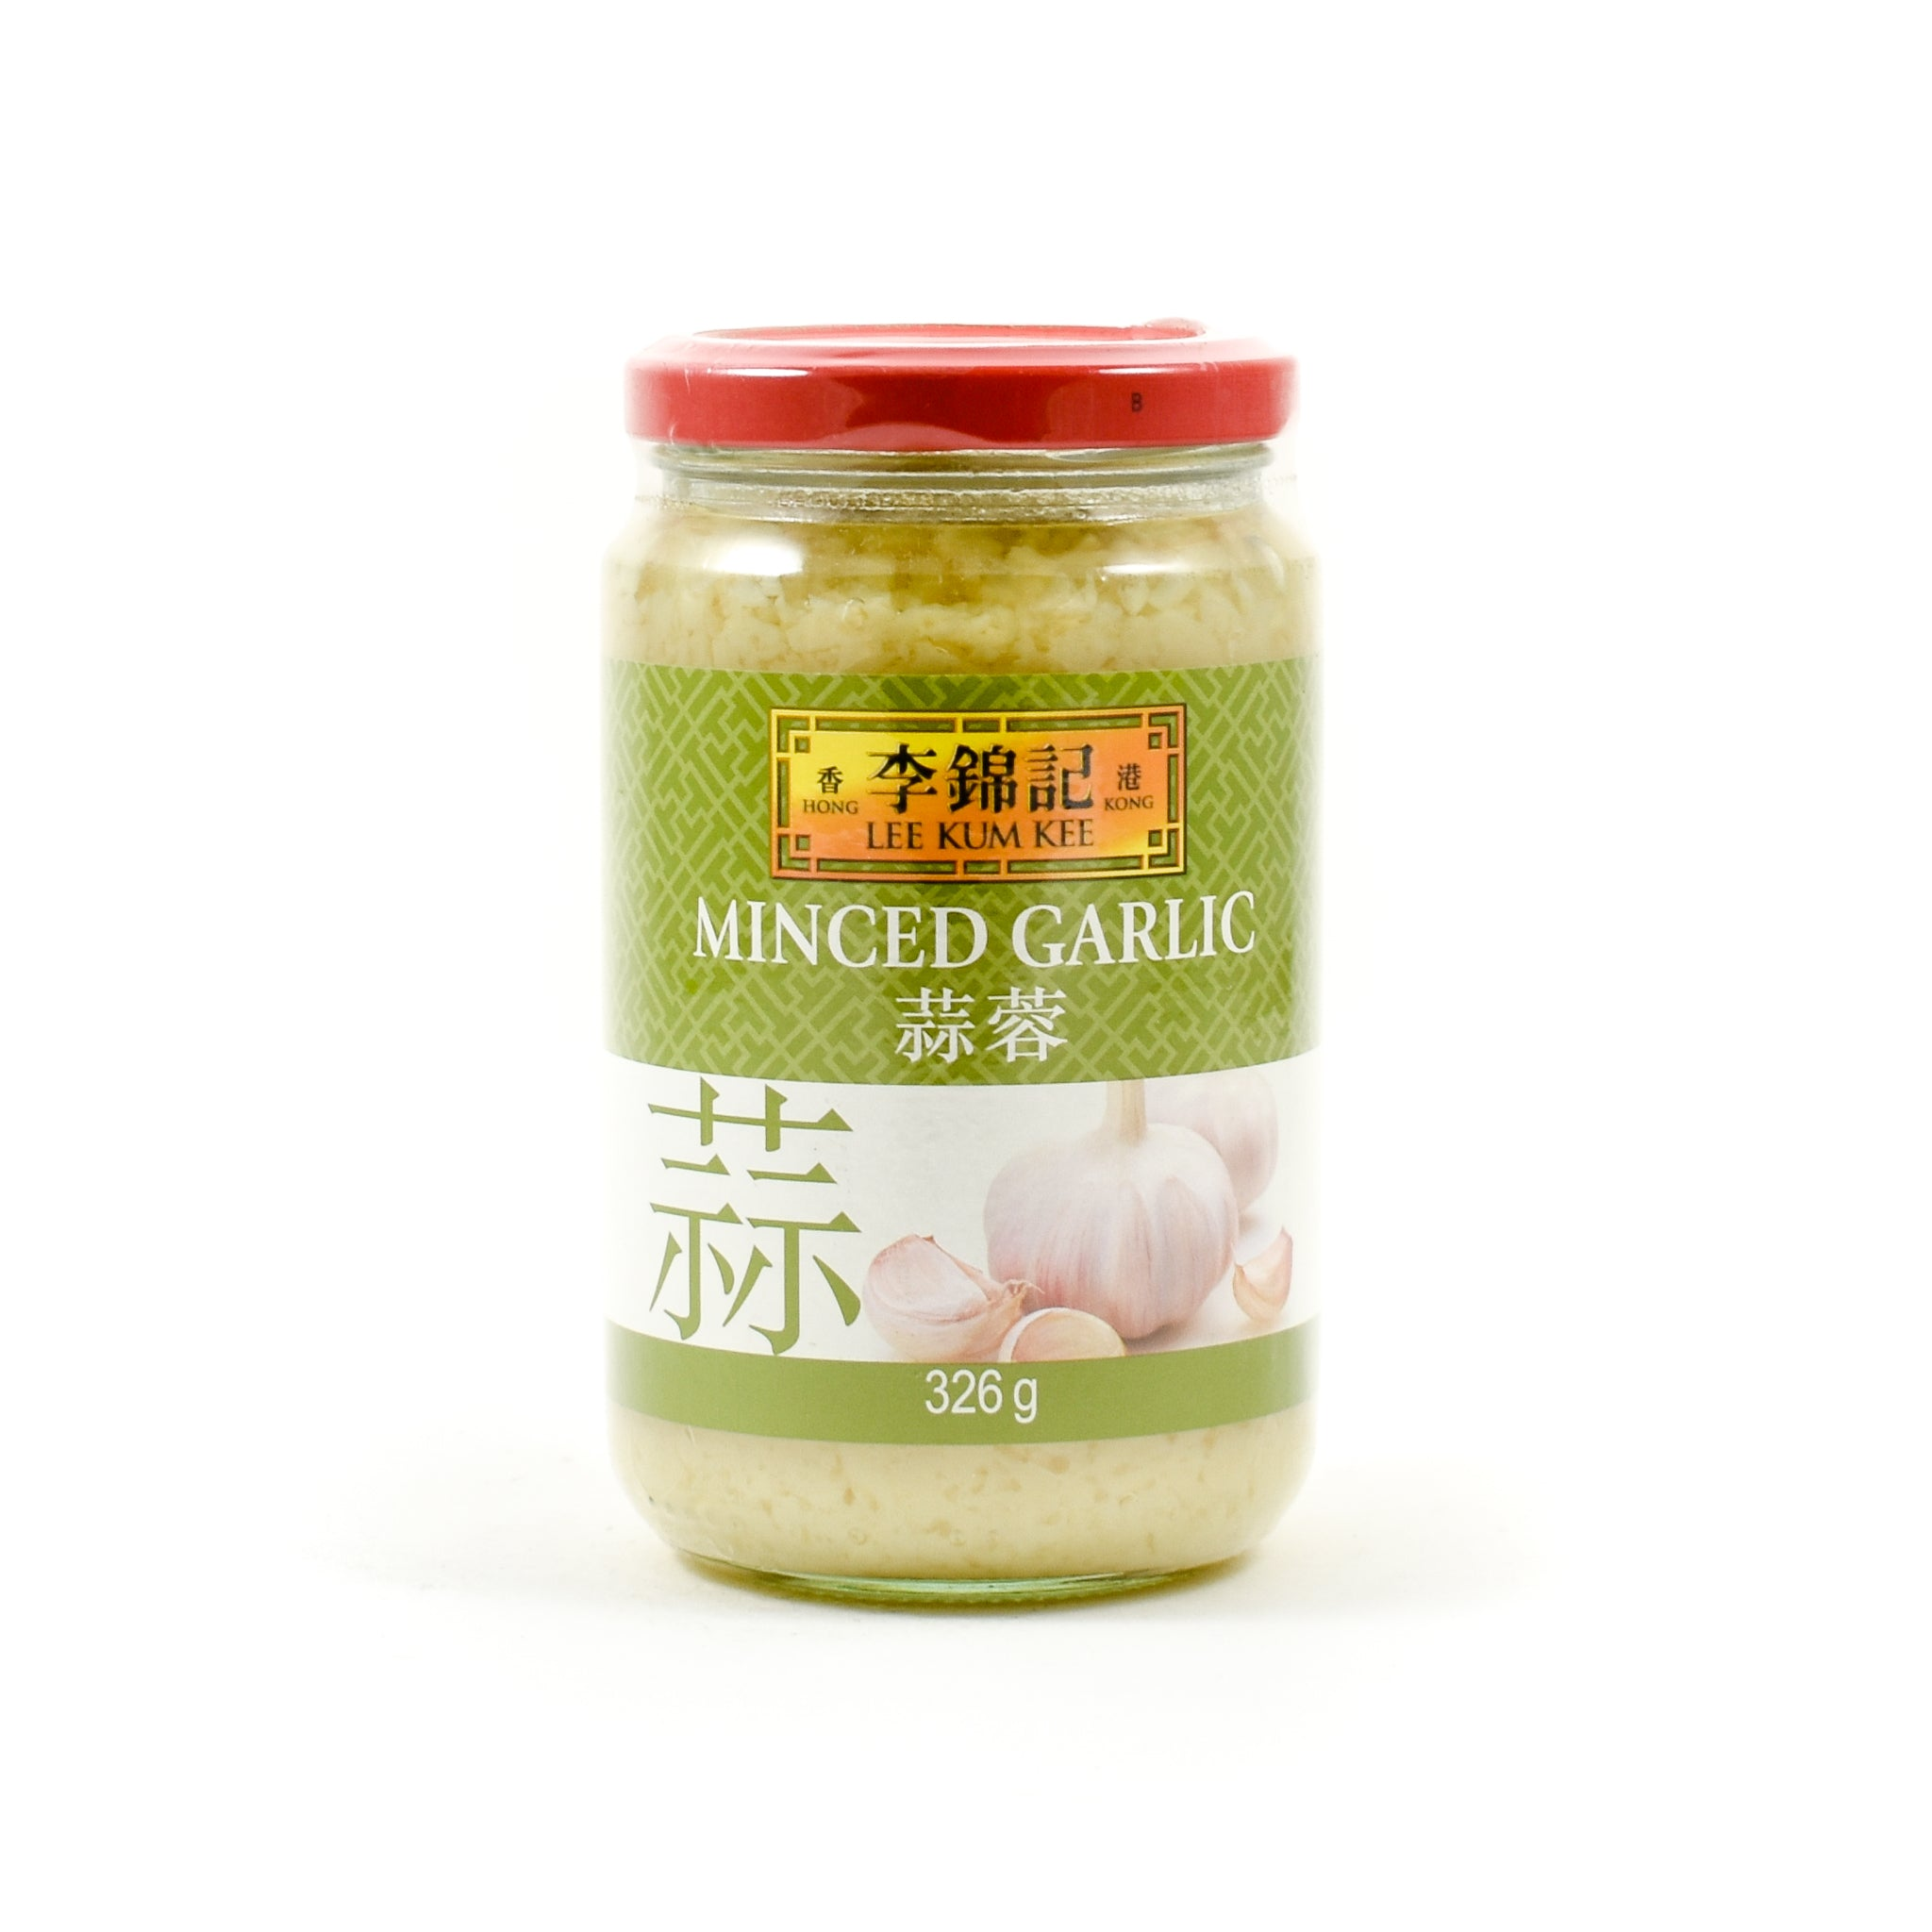 Lee Kum Kee Minced Garlic 326g Ingredients Sauces & Condiments Asian Sauces & Condiments Chinese Food